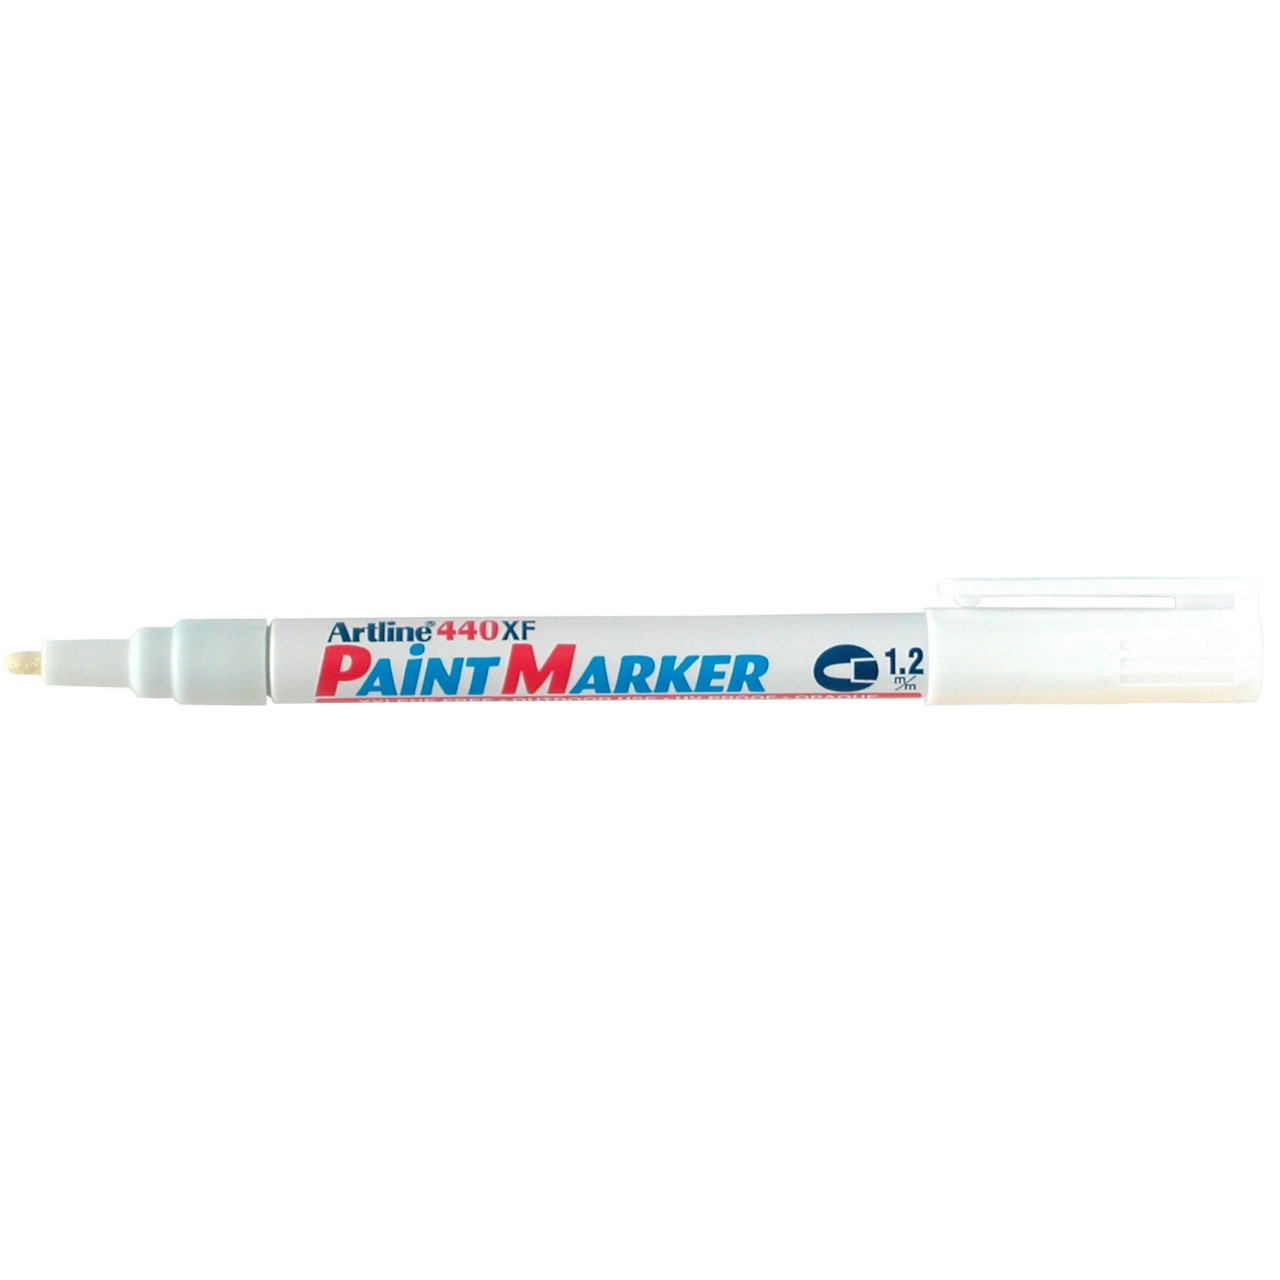 Artline 440 Paint Marker White 1.2Mm Bullet Nib